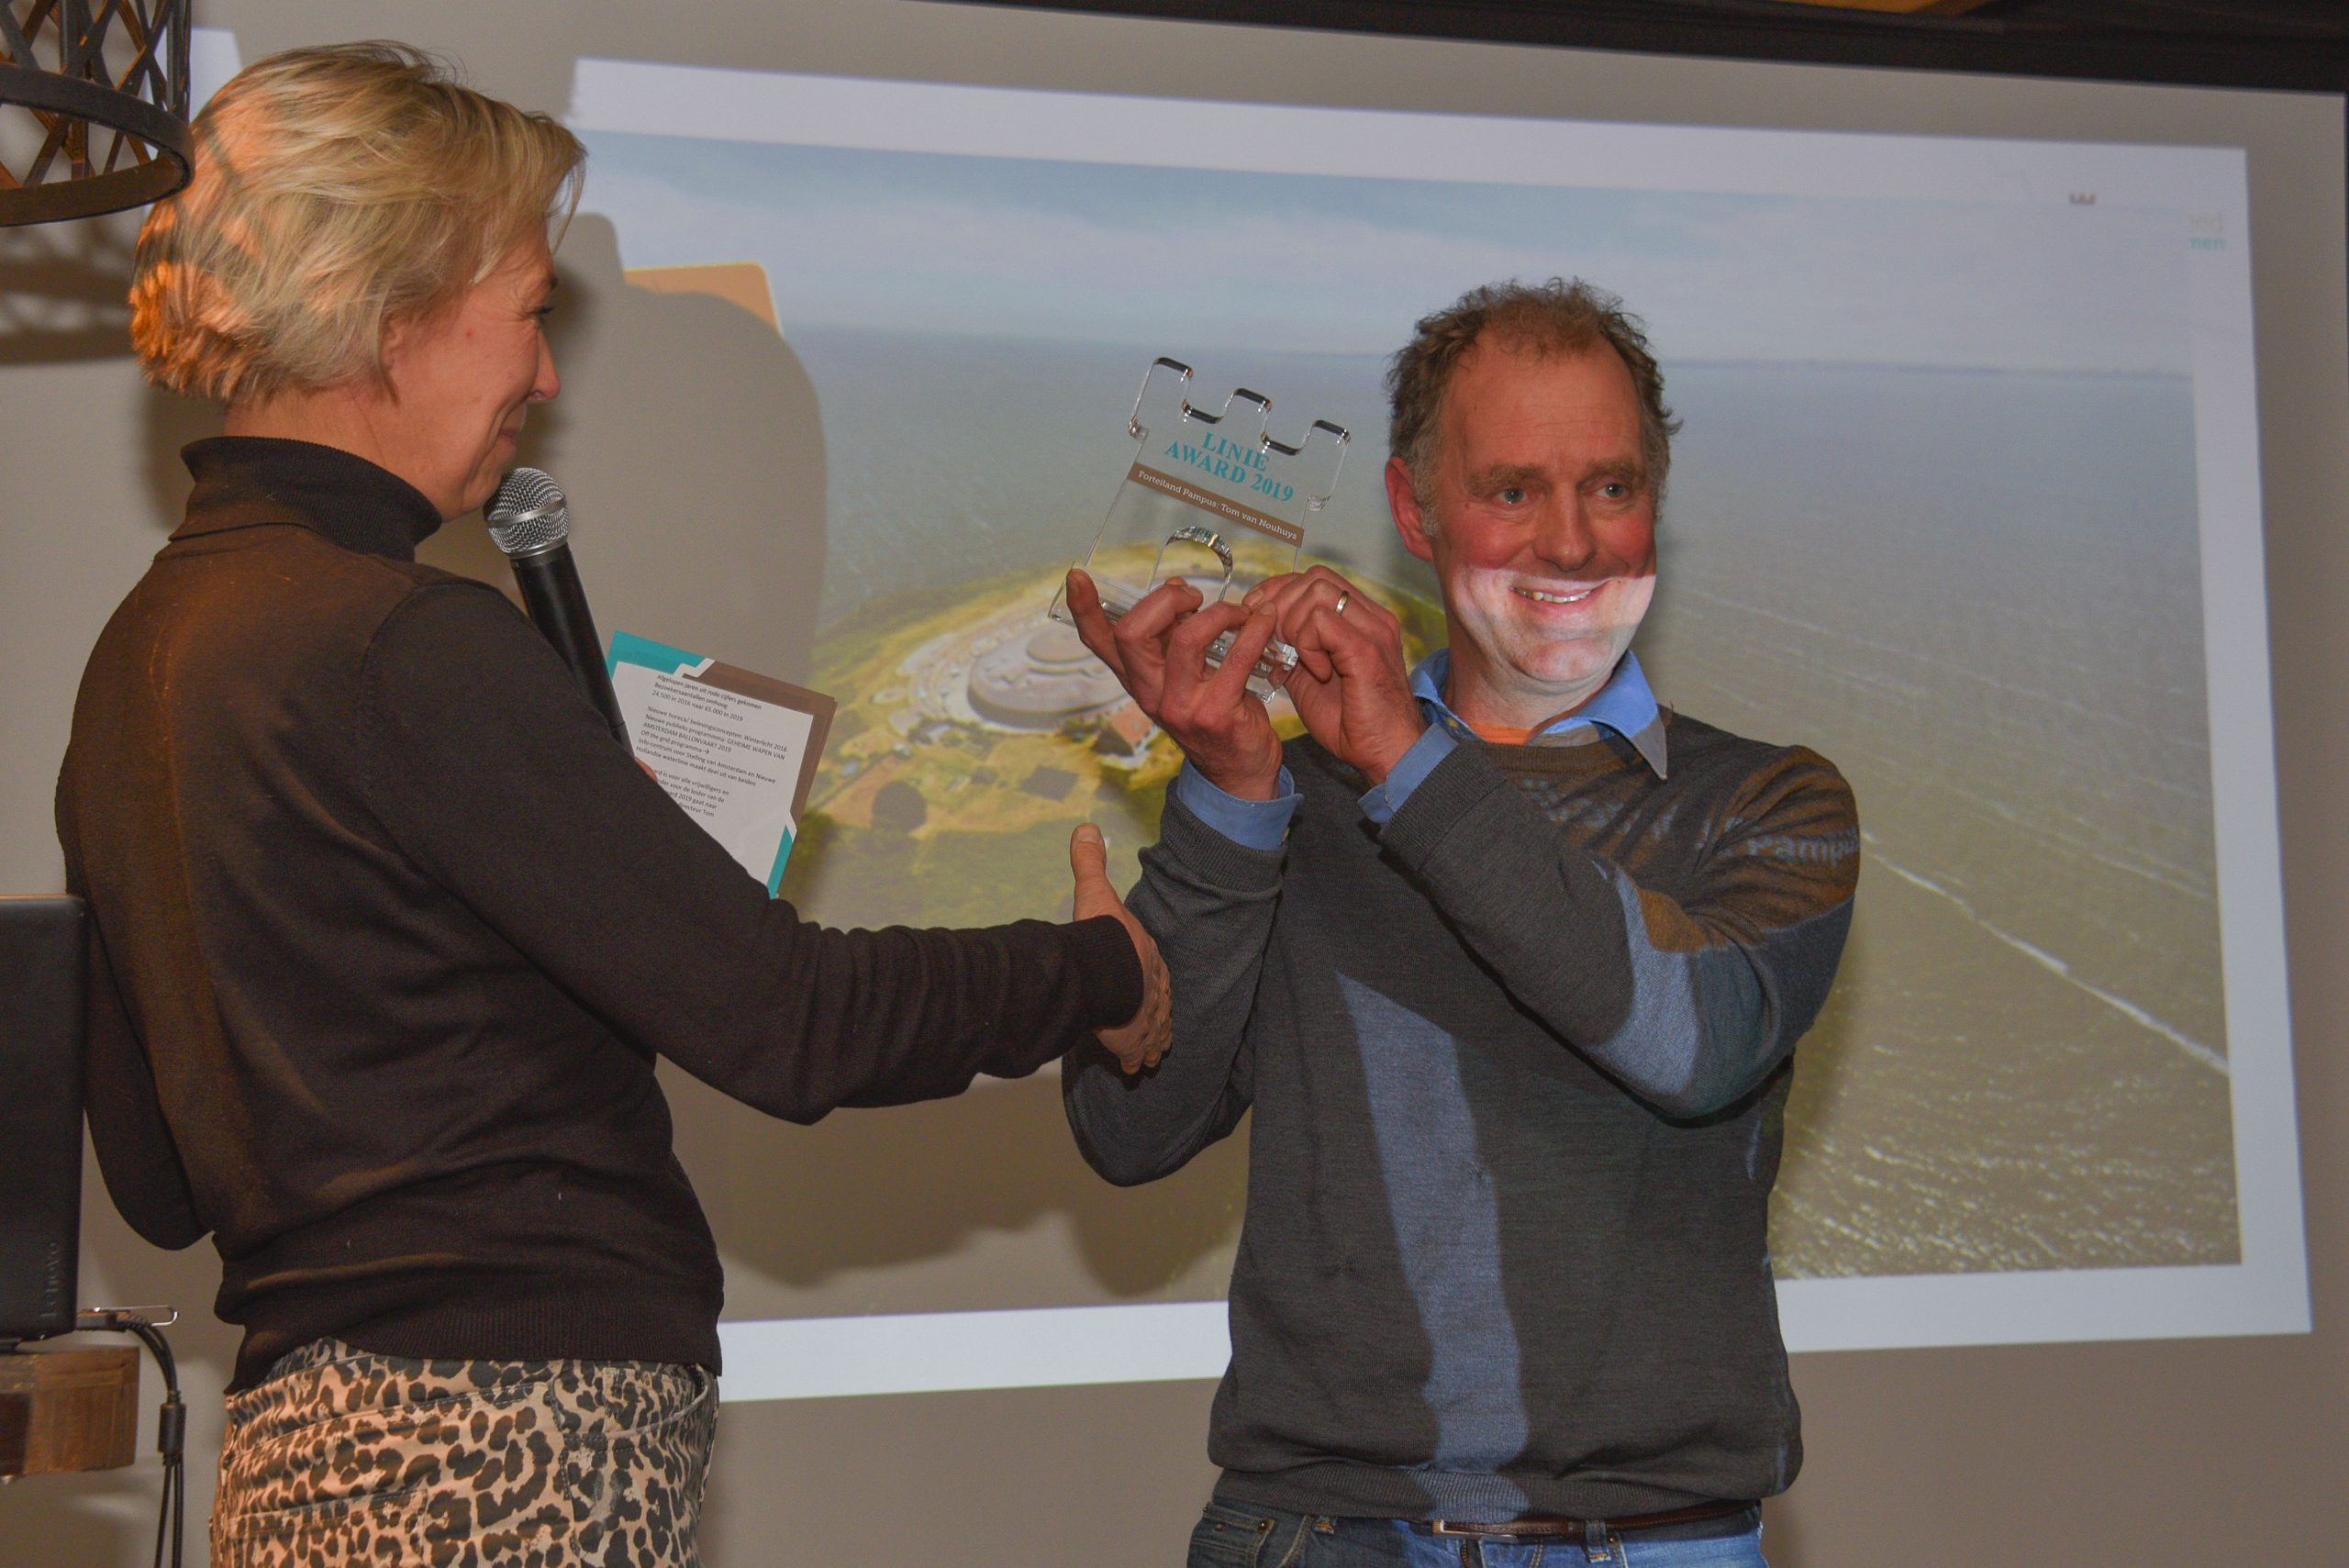 Diederik Bots van Pampus Events neemt namens Stichting Forteiland Pampus de Linie-Award 2019 in ontvangst. Juke van Niekerk van Stichting Liniebreed Ondernemen.